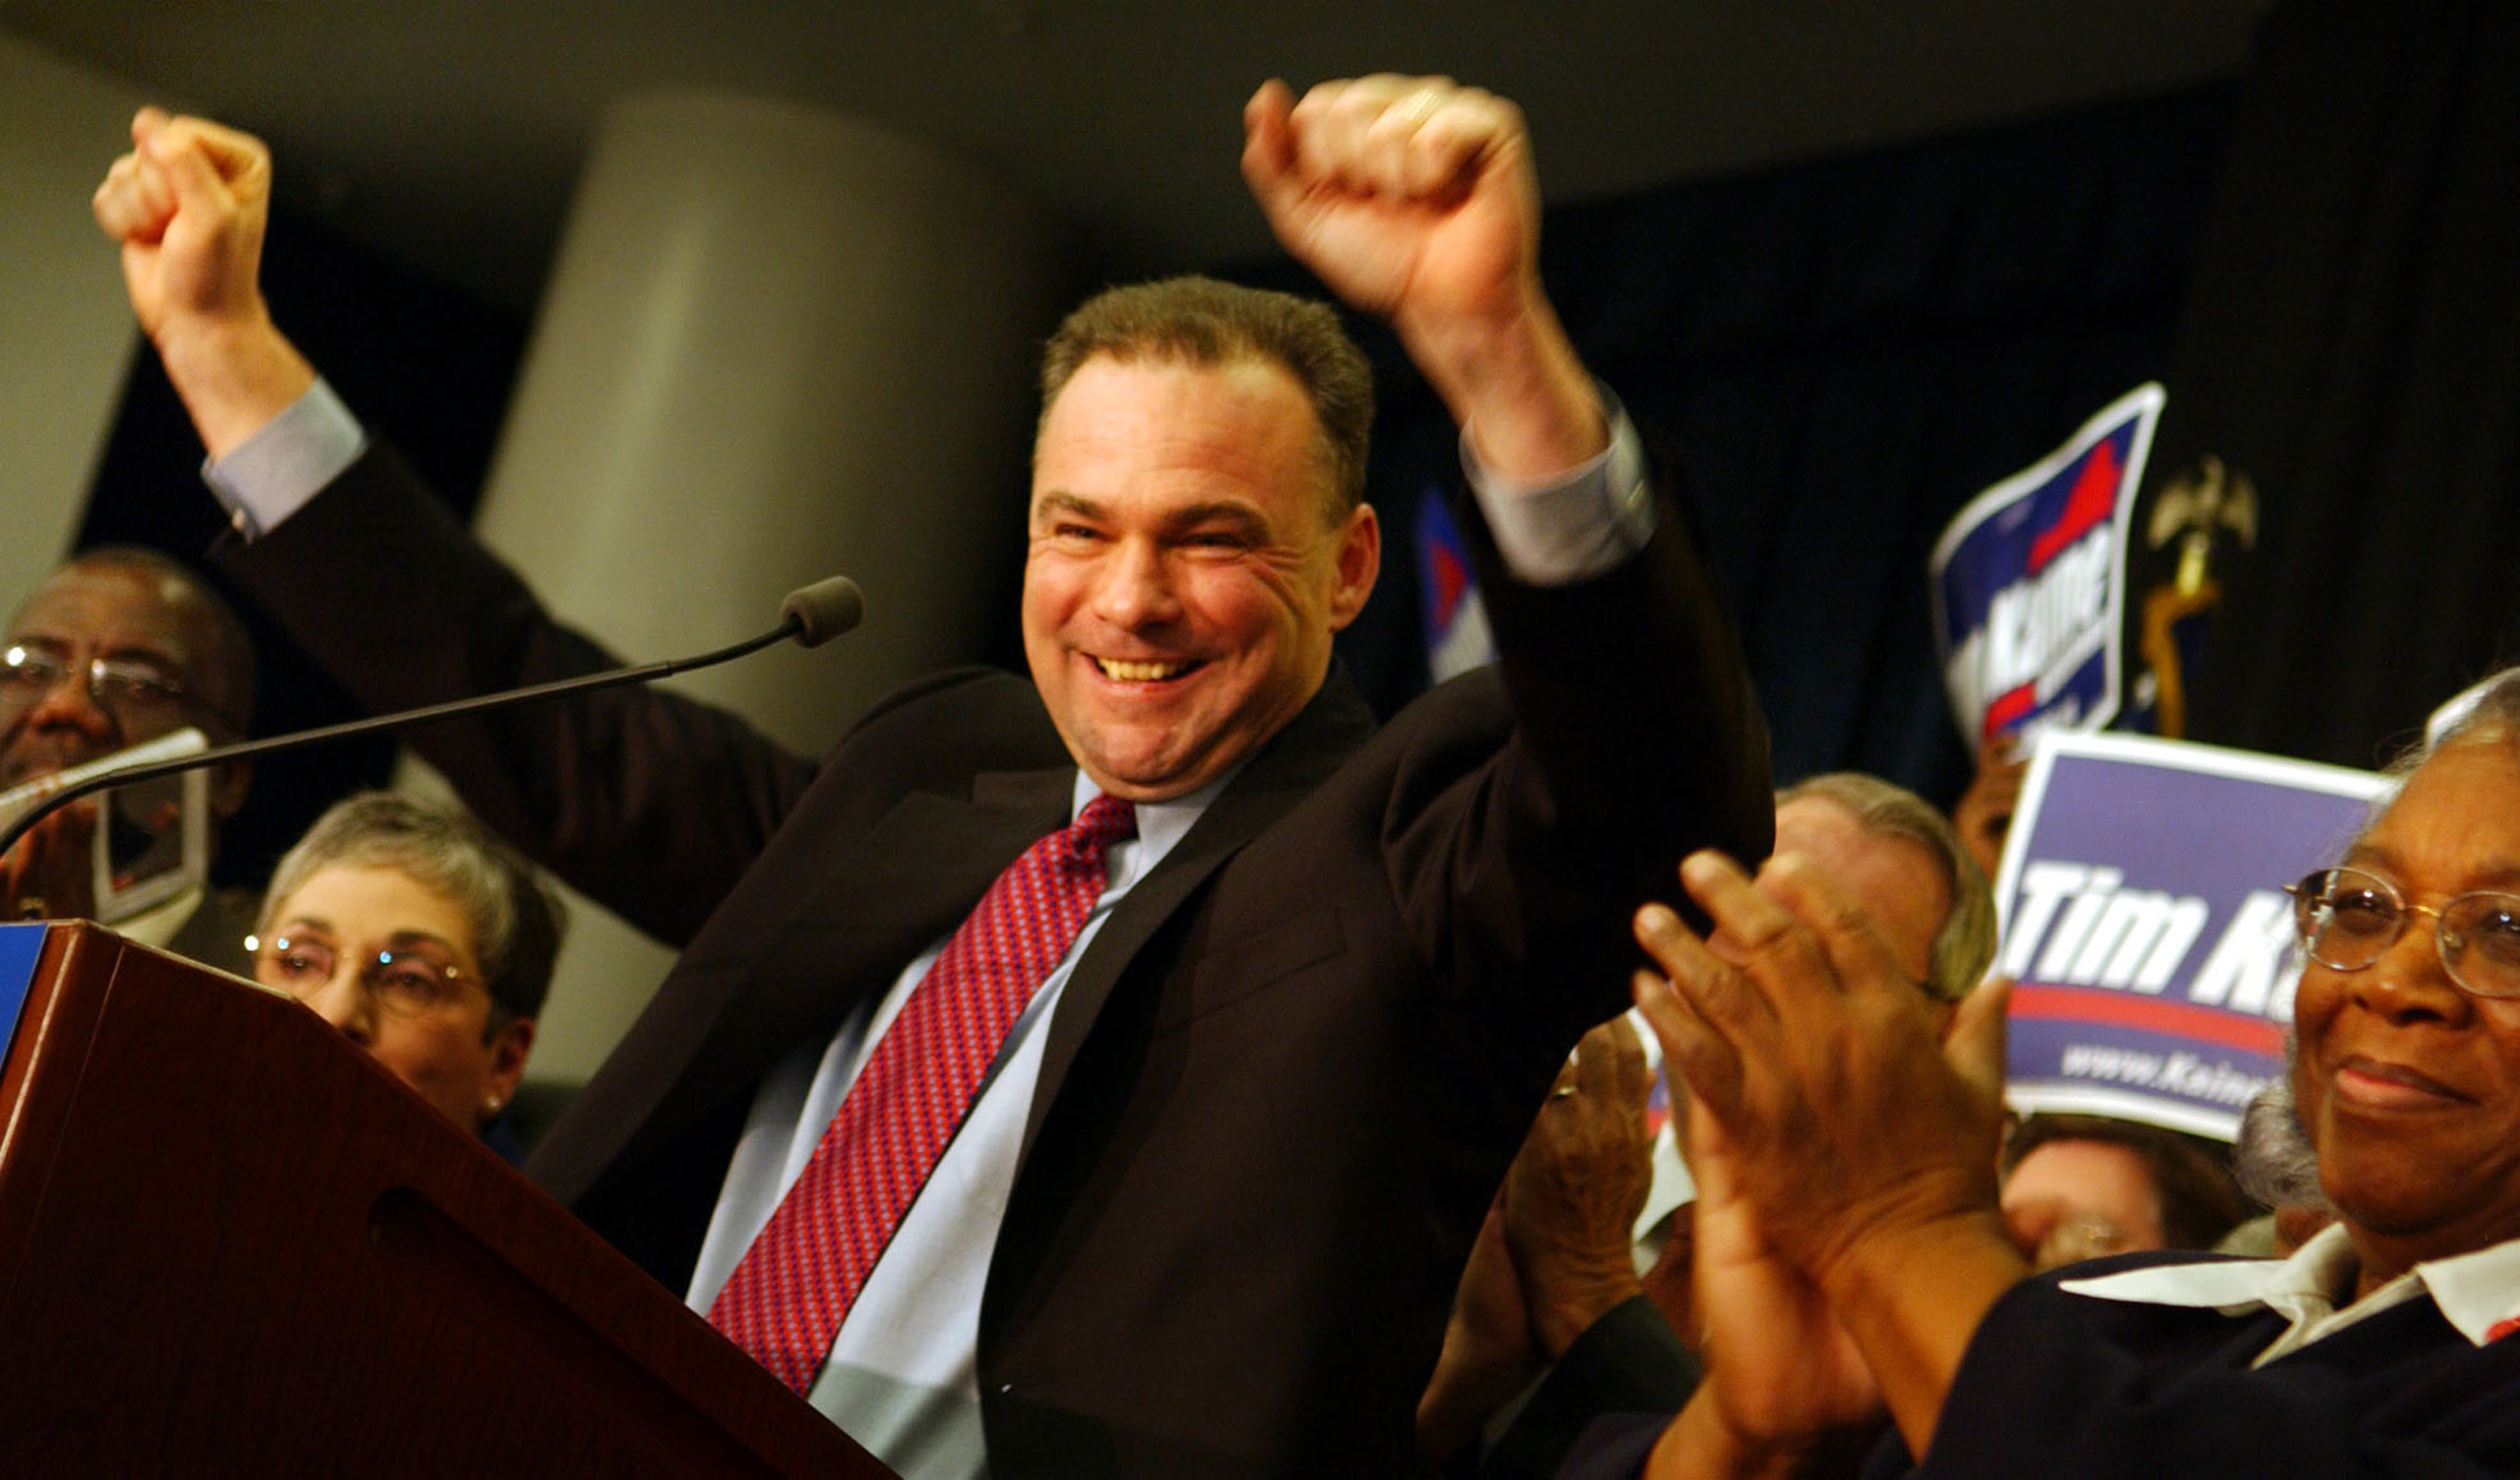 Surrounded by supporters and local politicians, Virginia Lt. Gov. Tim Kaine celebrates during a campaign kick-off rally for his gubernatorial race at Old dominion University in Norfolk, Va., on March 16, 2005.